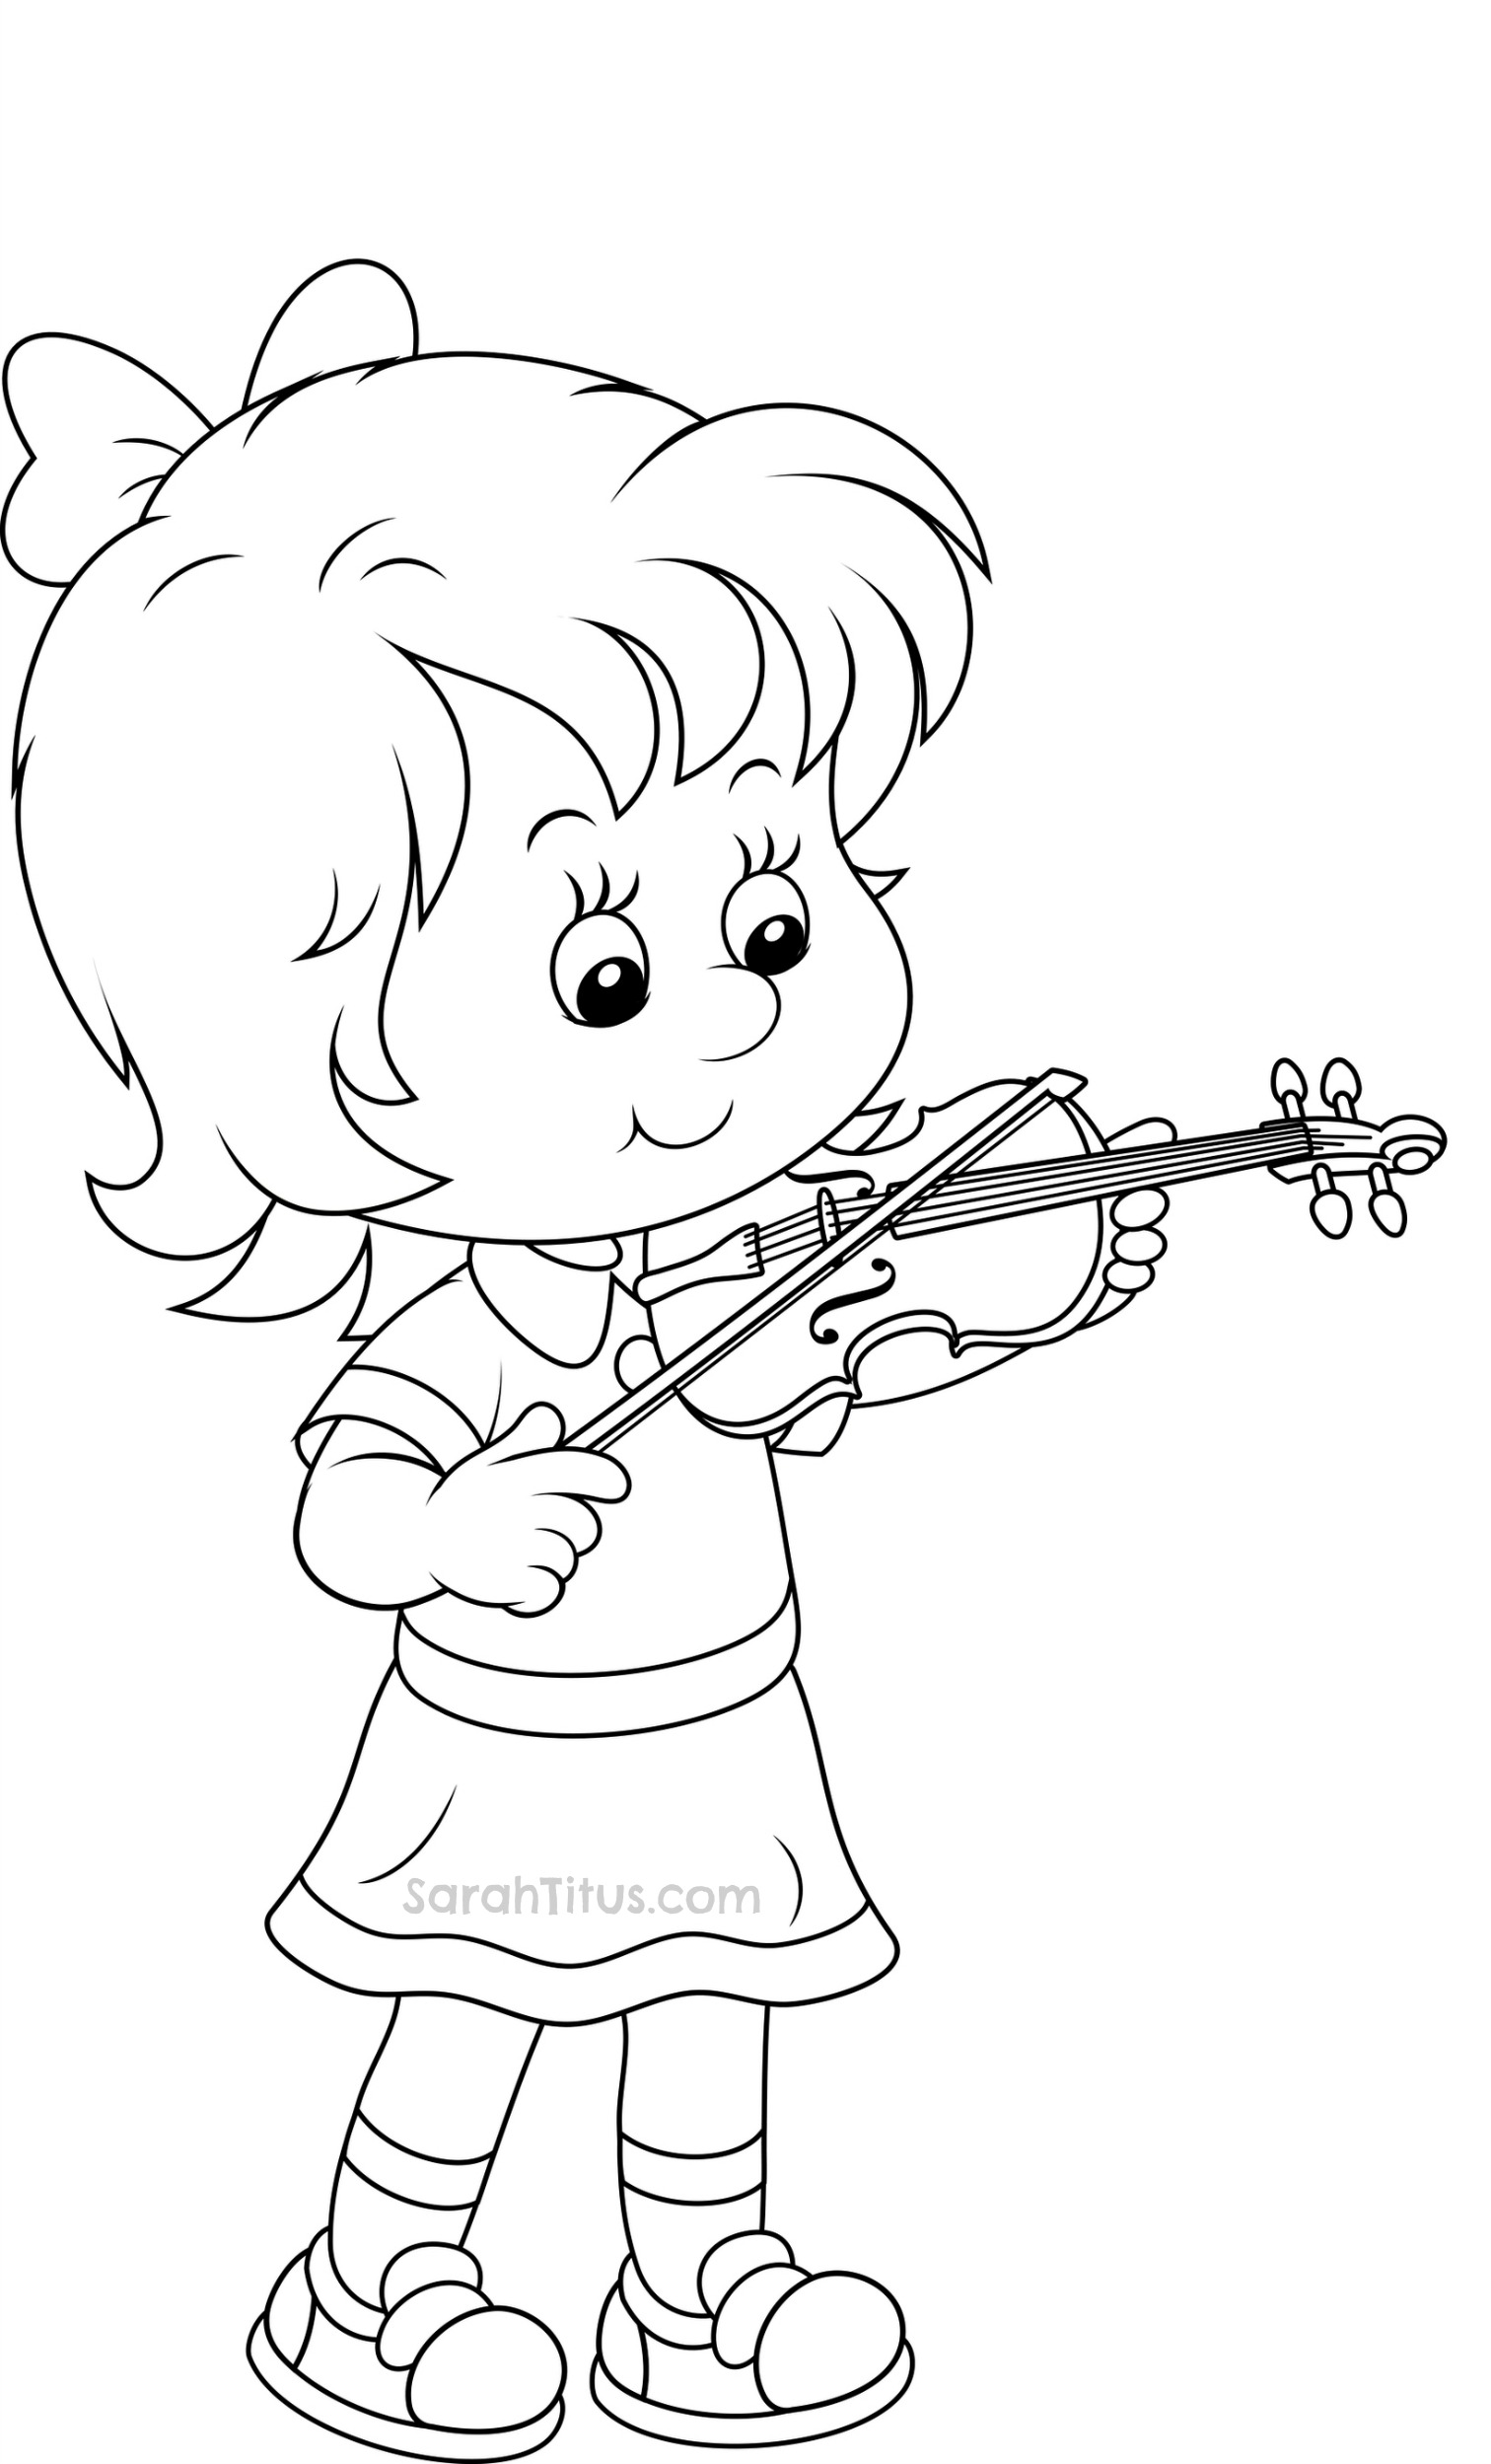 coloring sheet things to color back to school coloring pages sarah titus things to sheet color coloring